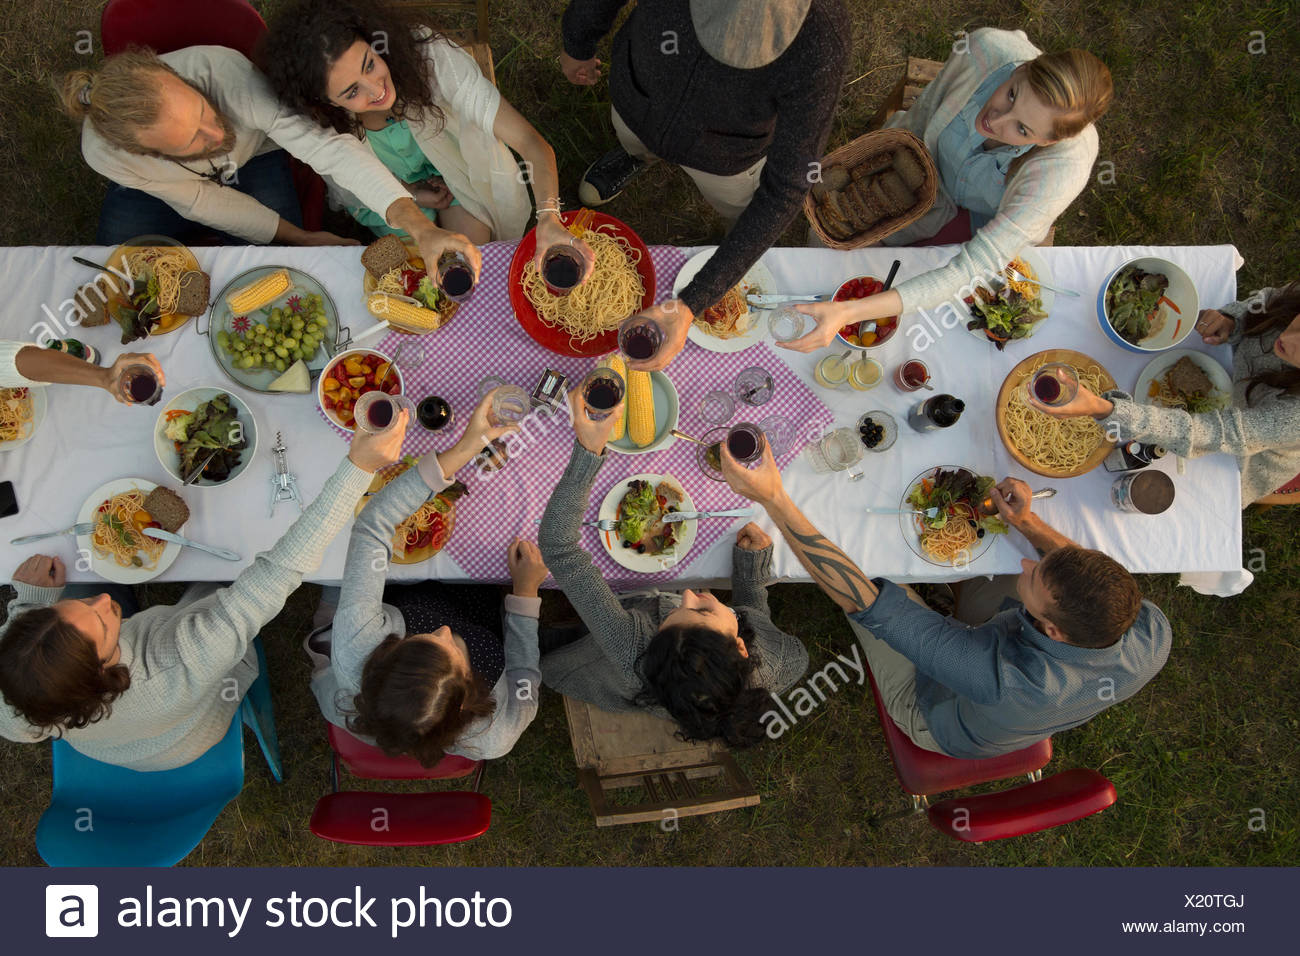 Overhead view friends toasting wine glasses at garden party dinner - Stock Image